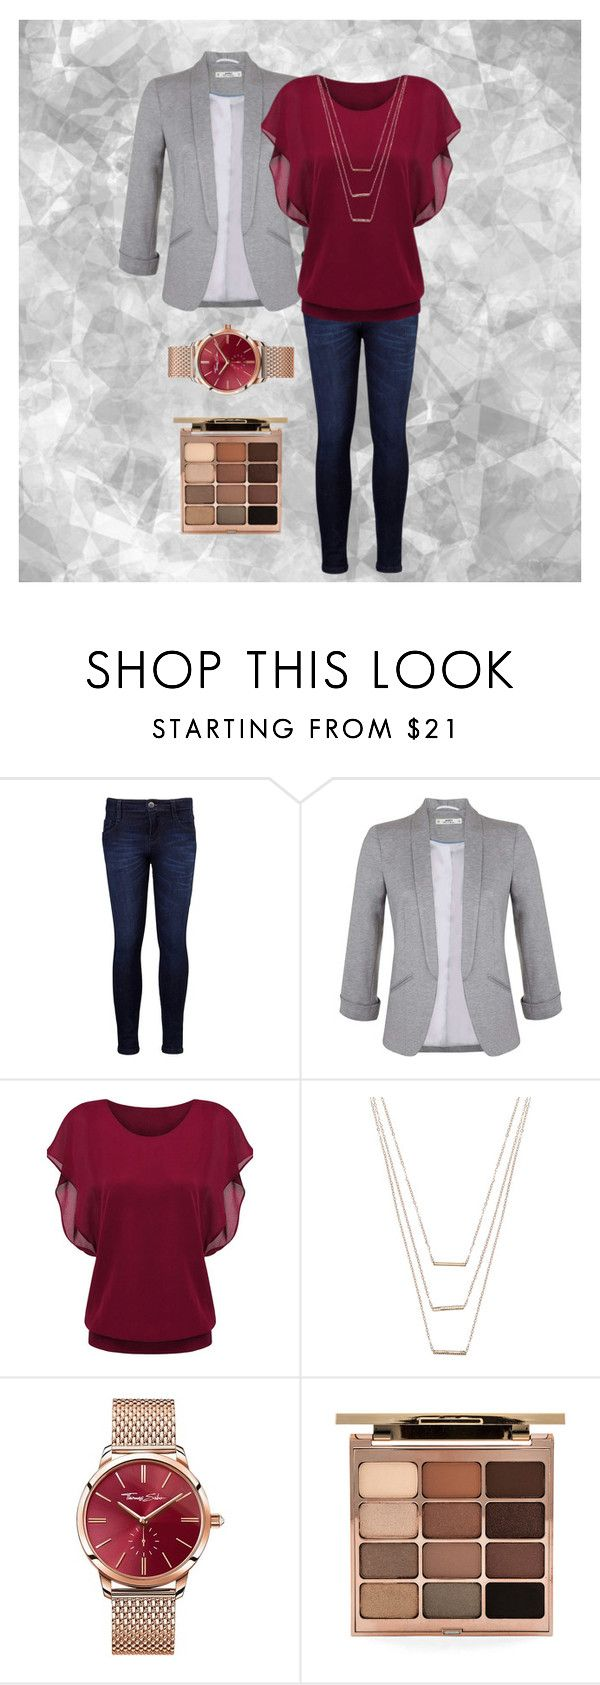 """""""Maroon-Red"""" by sr77 ❤ liked on Polyvore featuring Levi's, Miss Selfridge, ERTH, Thomas Sabo and Stila"""